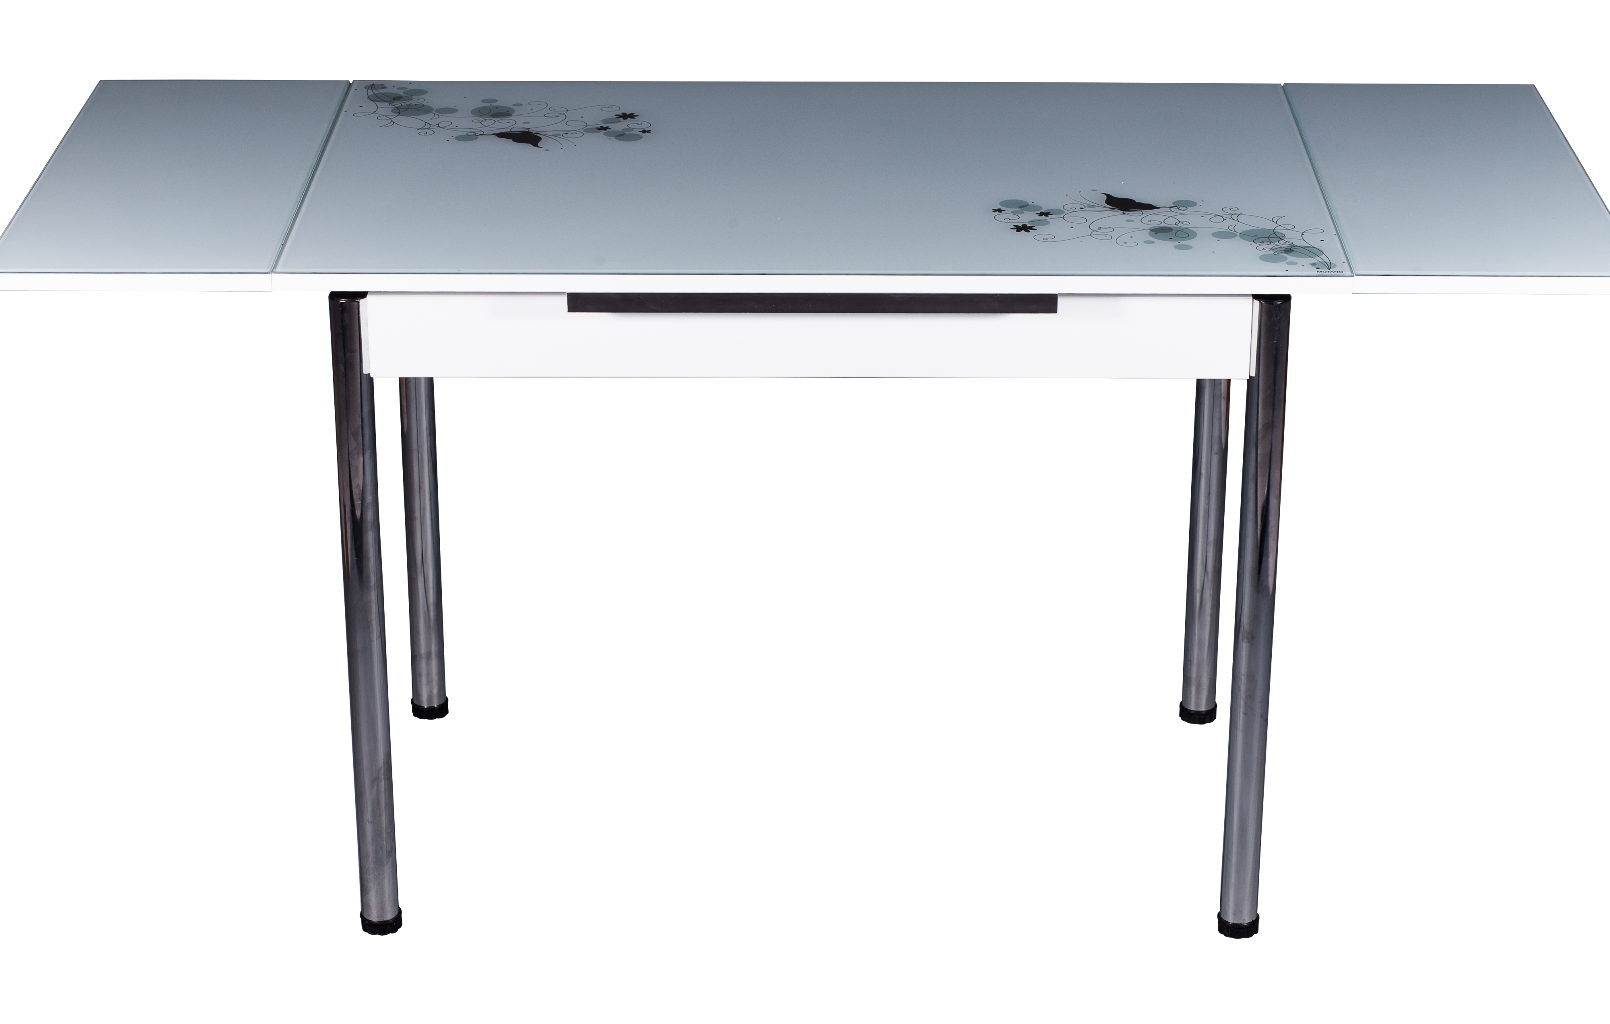 graphic download Table chair furniture desk. Drawing rectangle tabel